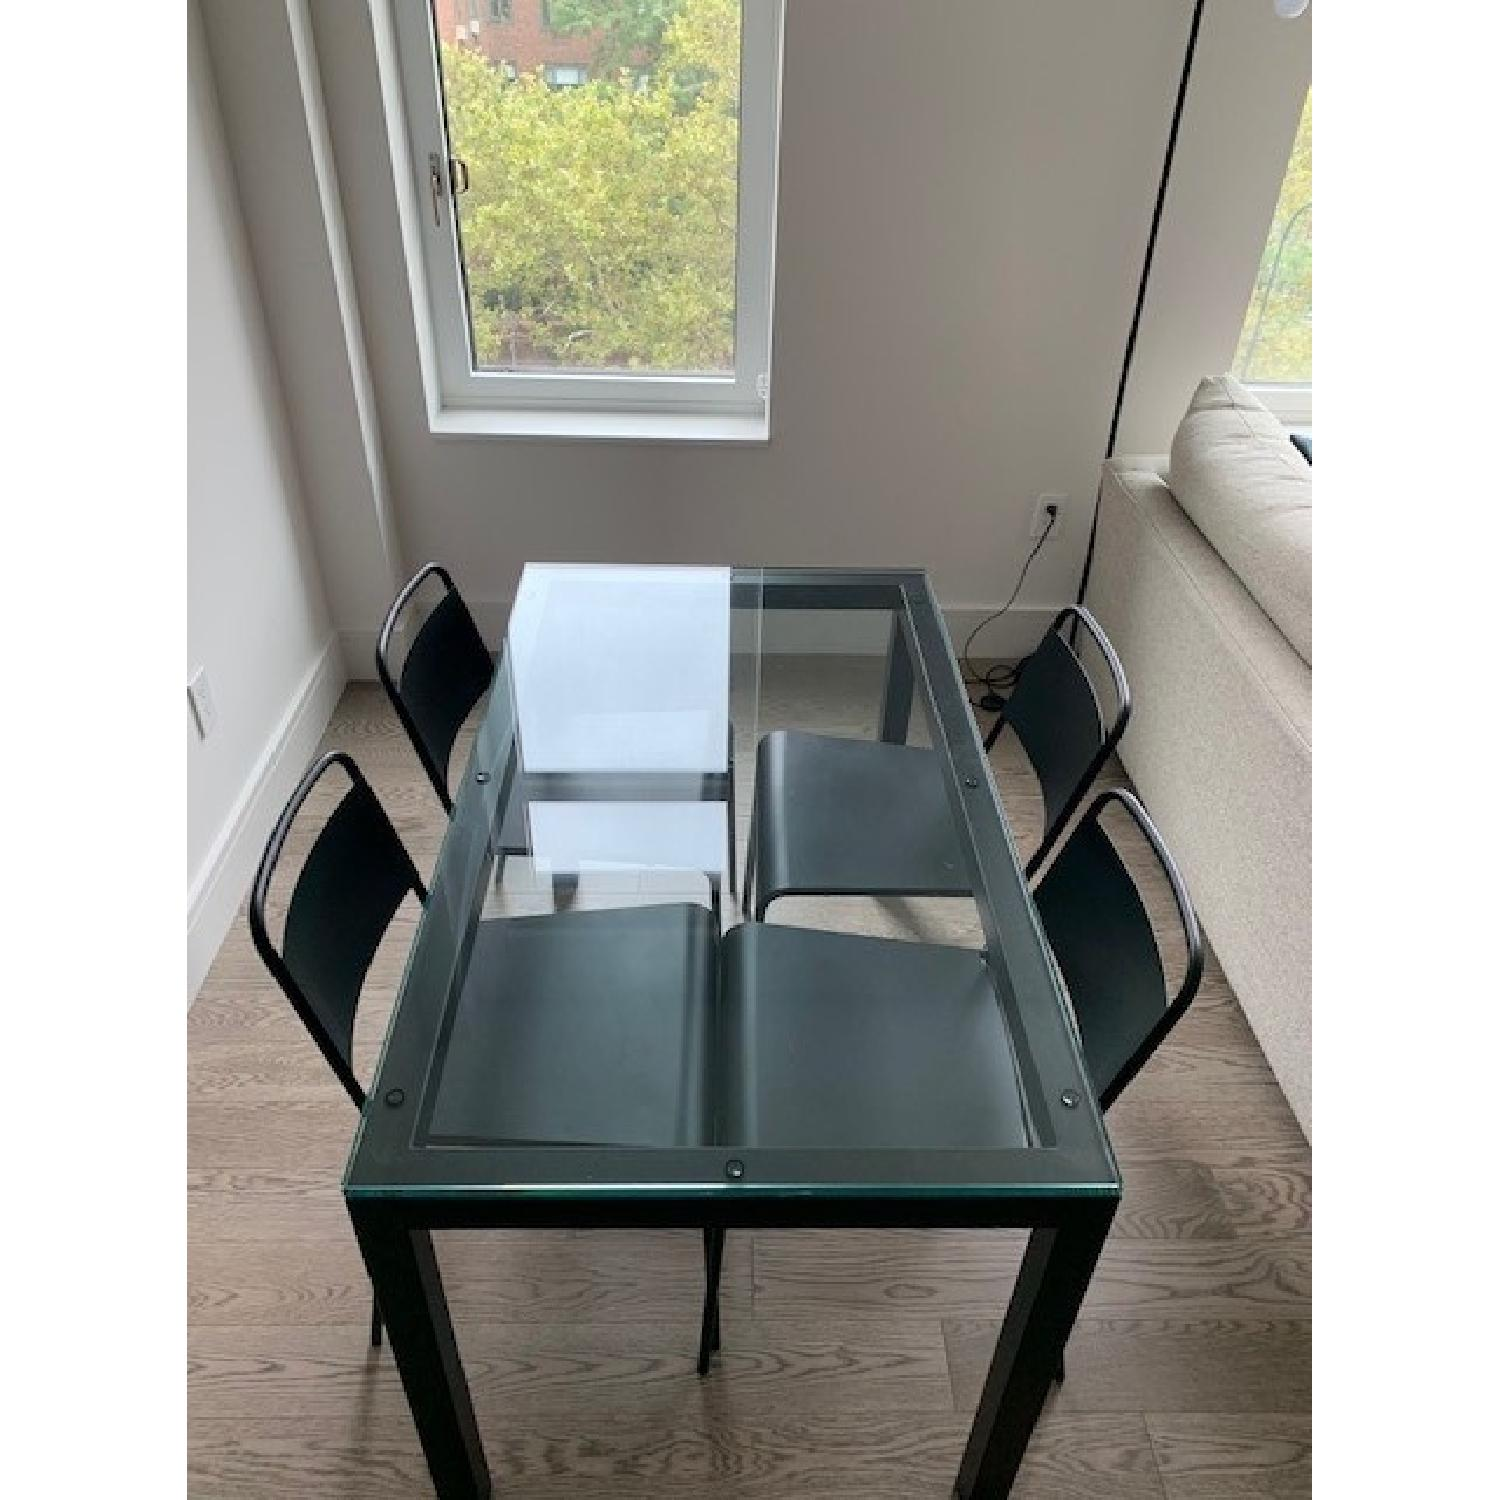 Crate & Barrel Glass Dining Table w/ 4 Chairs - image-2